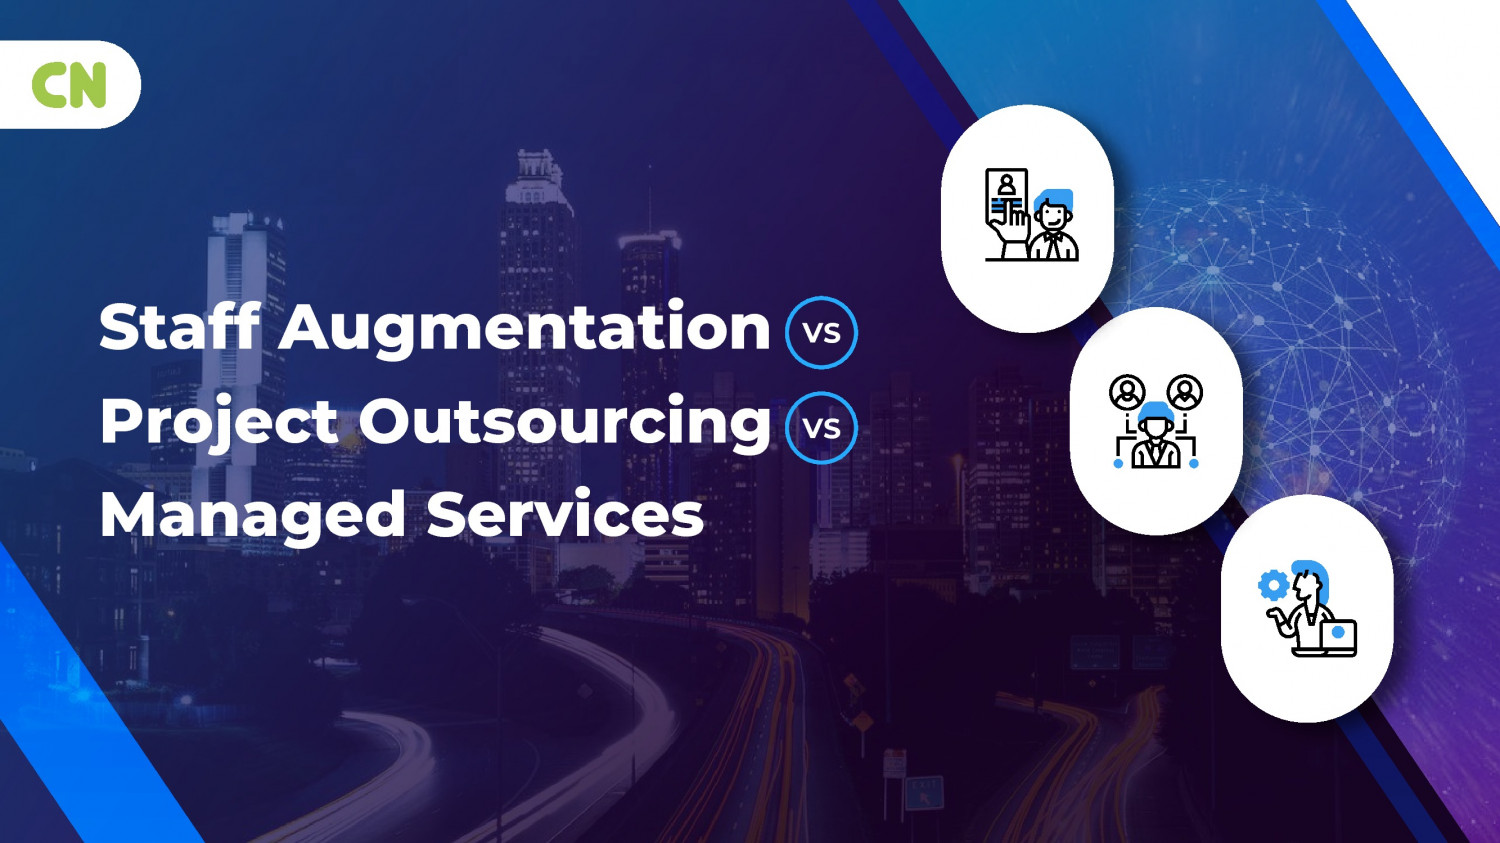 Staff Augmentation vs Project Outsourcing vs Managed Services Infographic